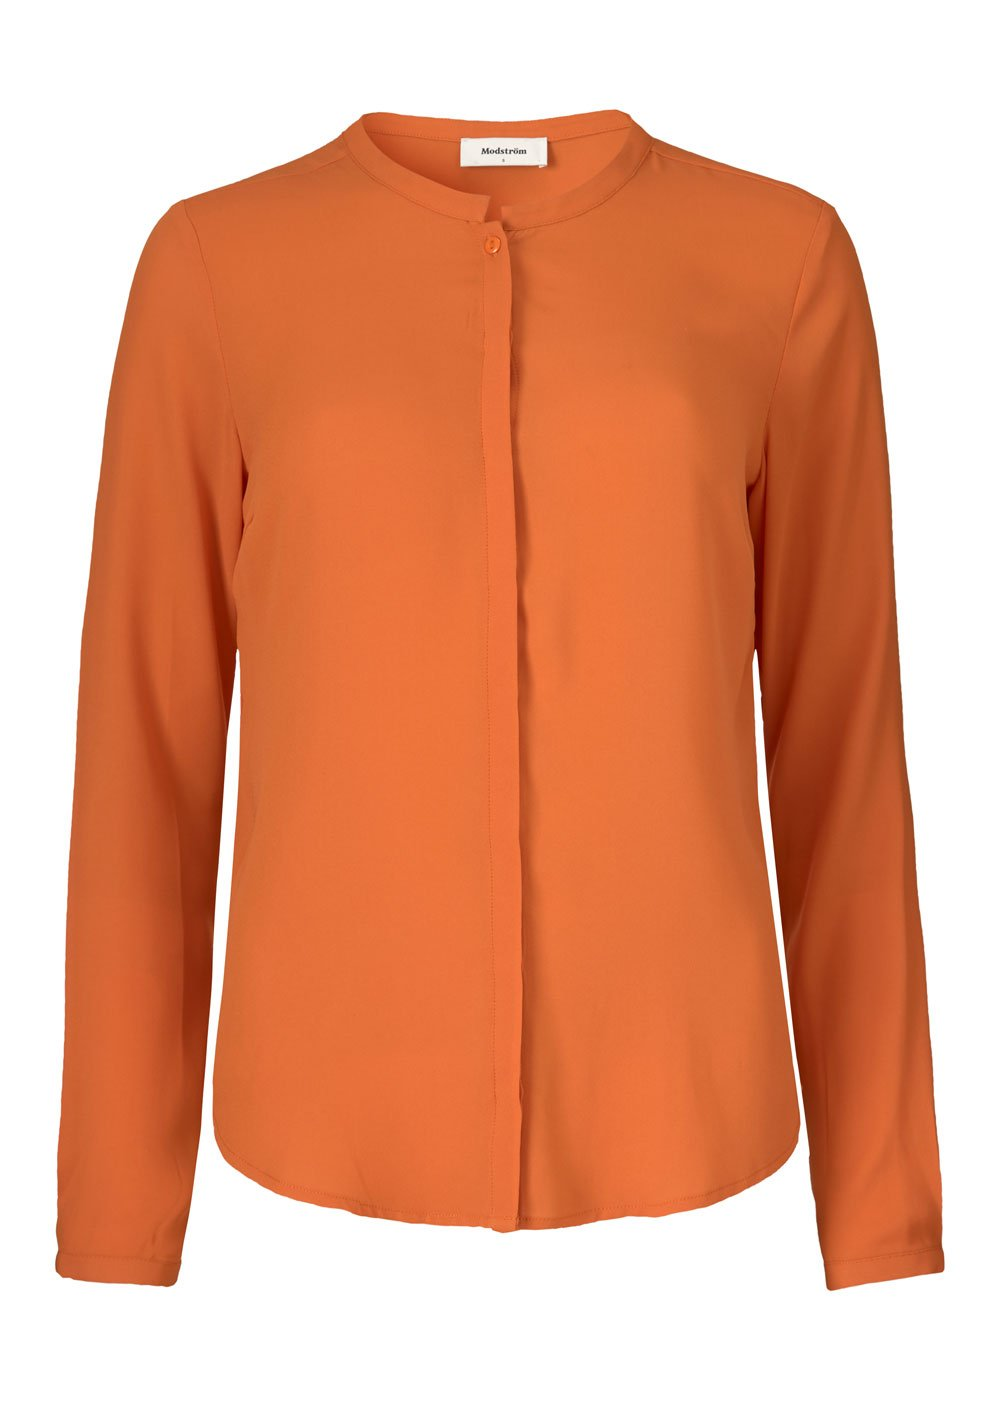 Cyler Shirt - Burnt Orange